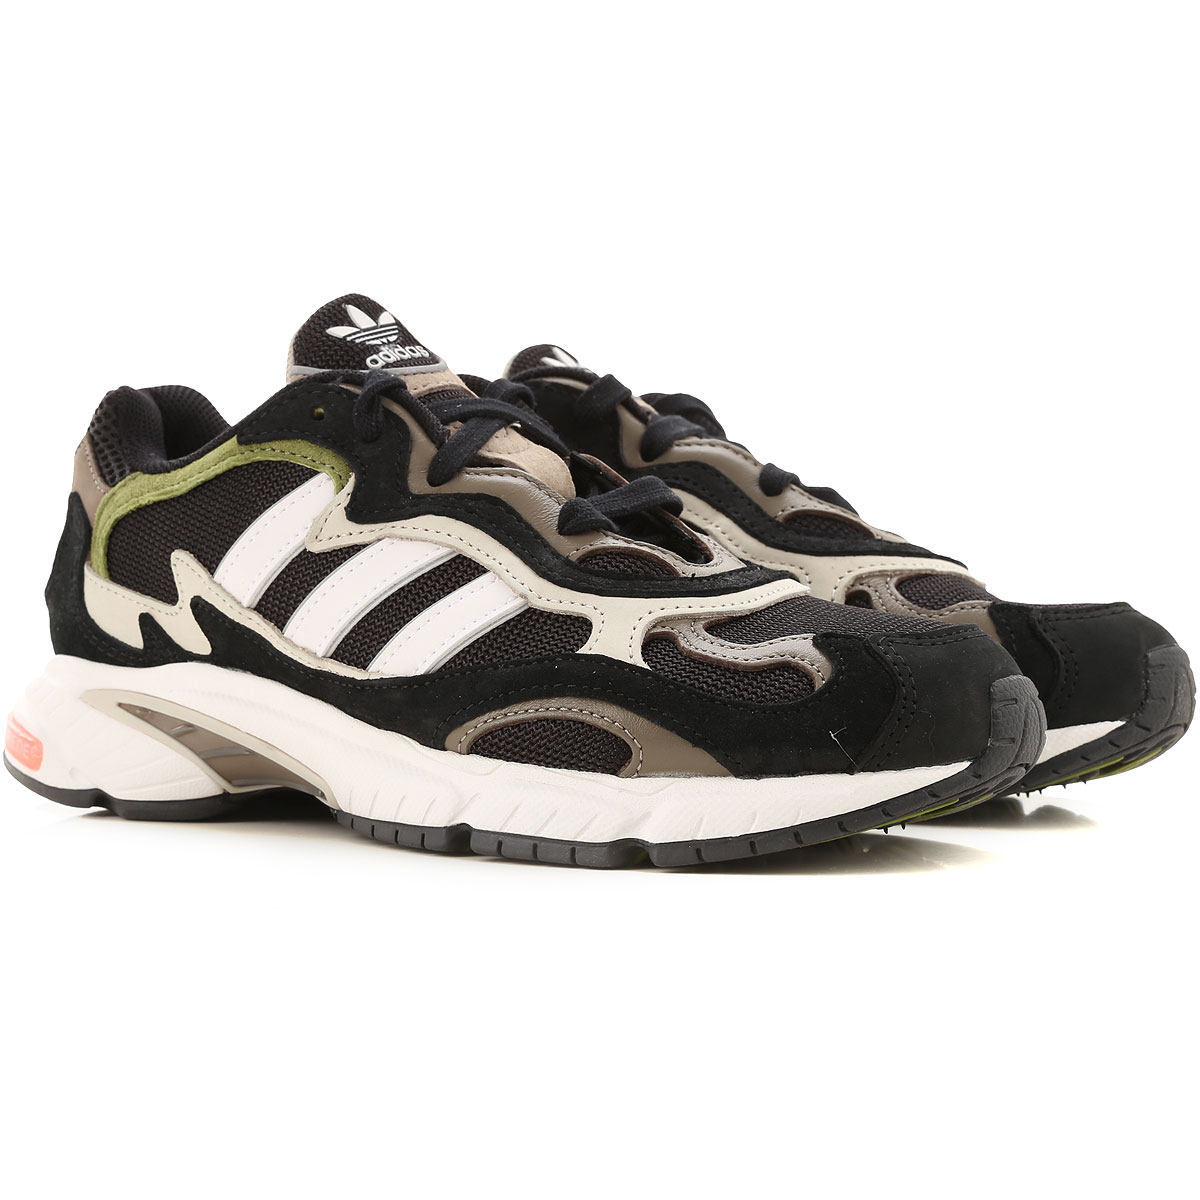 Adidas Sneakers for Men On Sale in Outlet, Black, Leather, 2019, 7 7.5 8